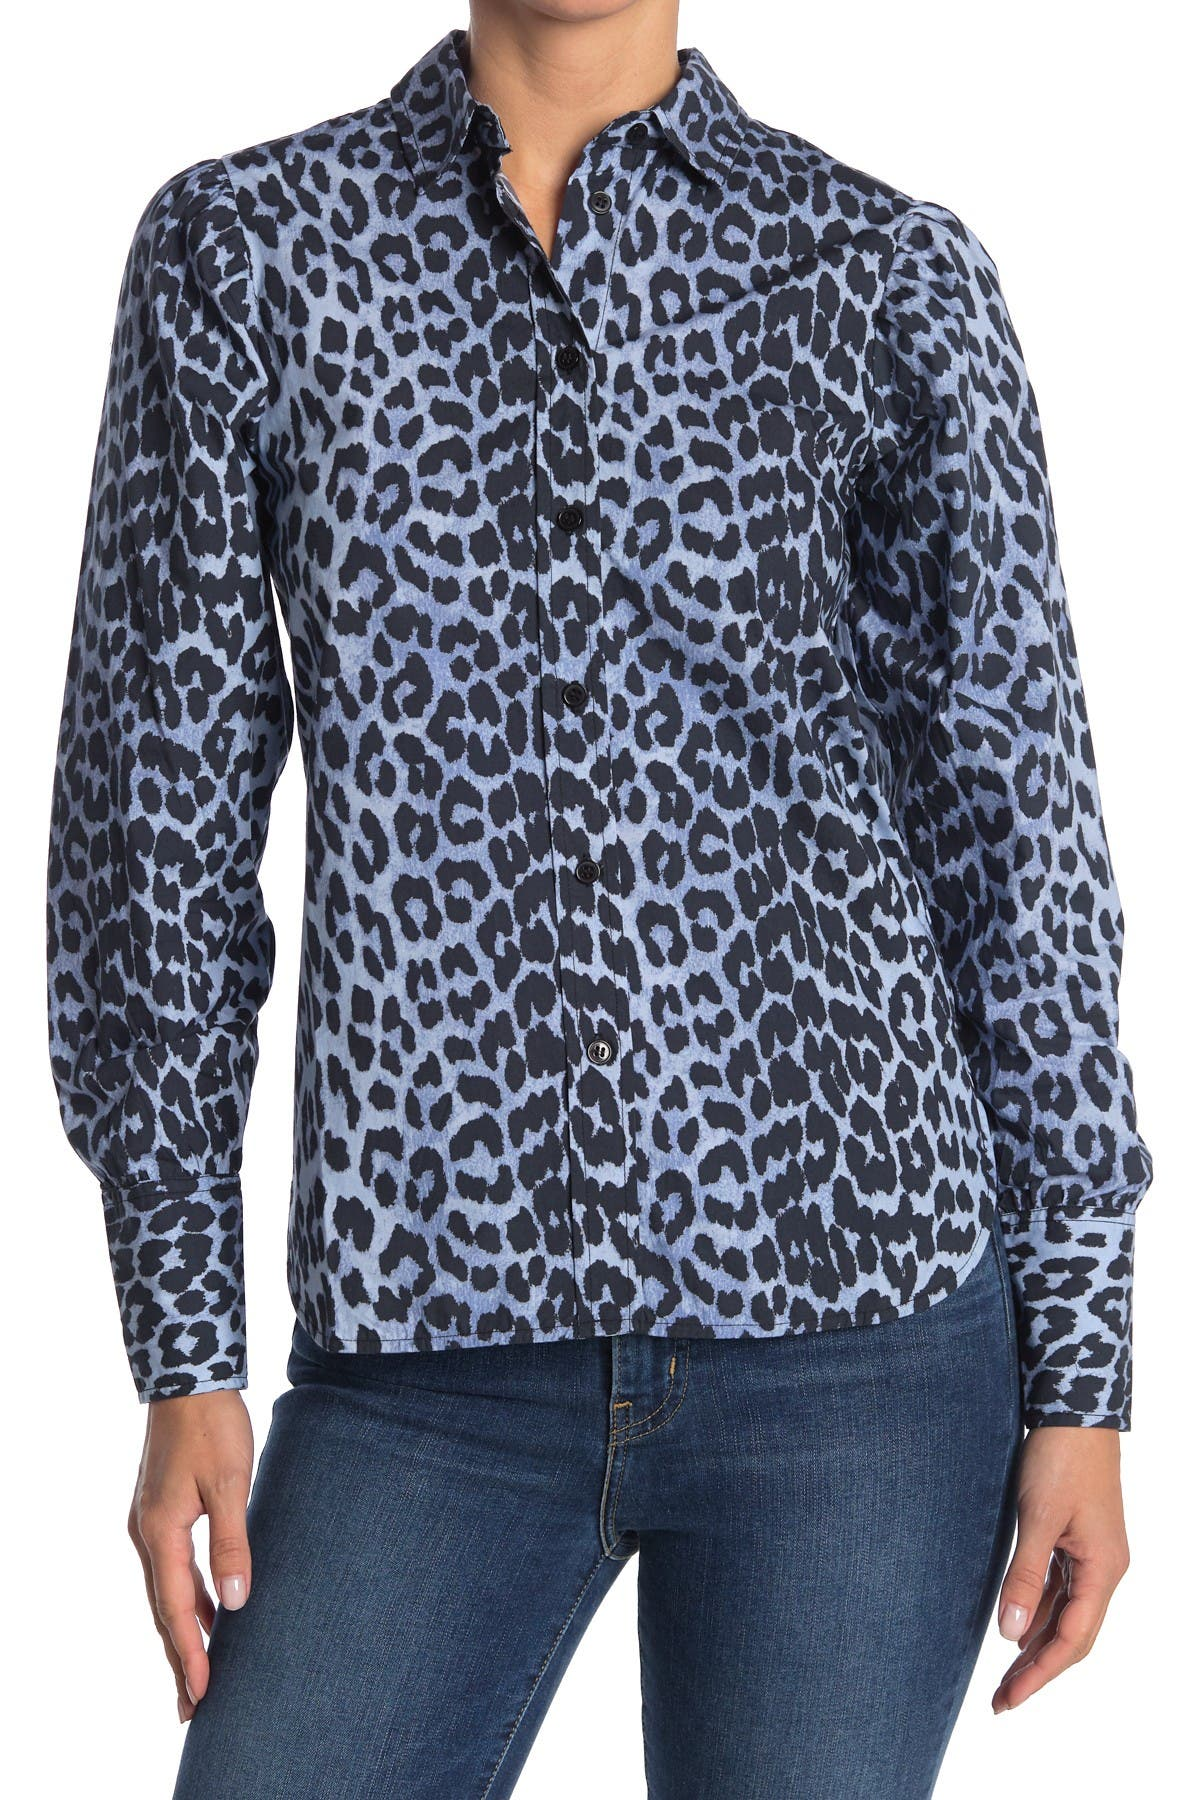 Image of GANNI Printed Cotton Poplin Shirt